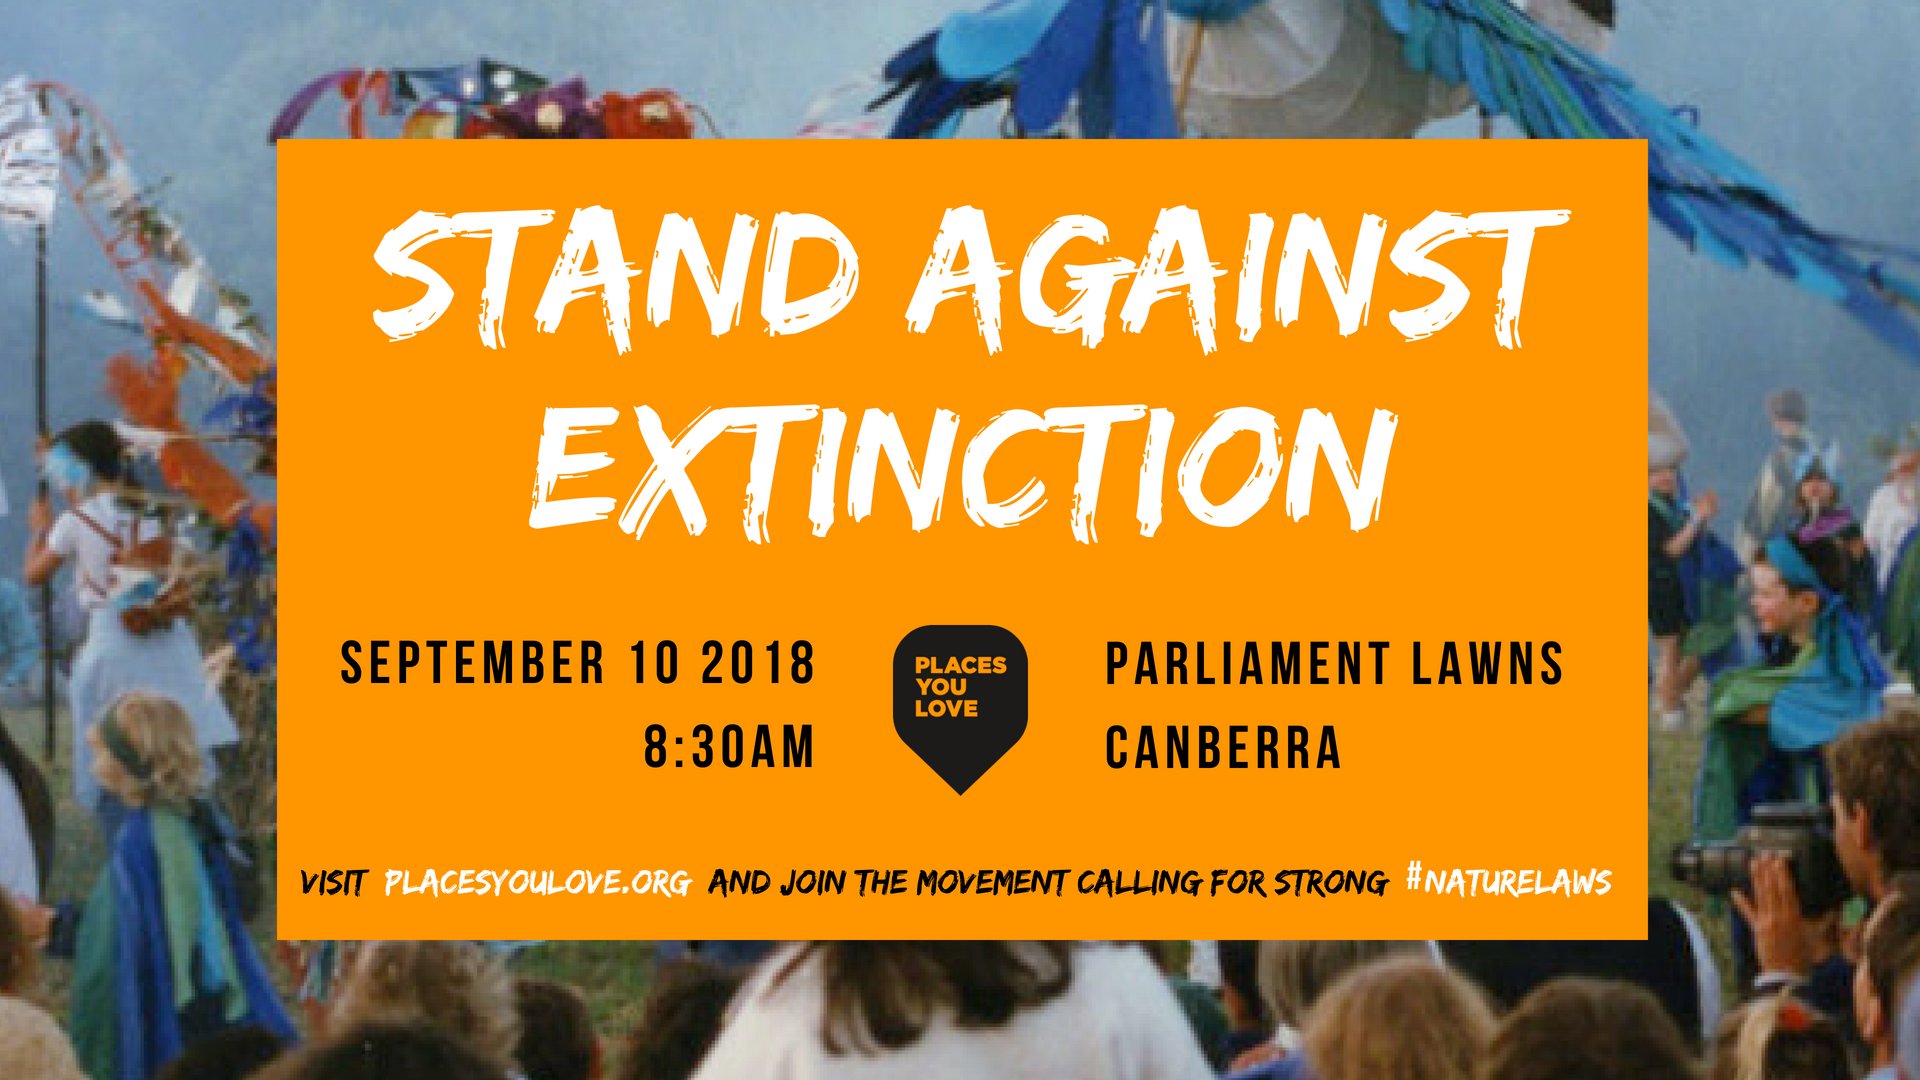 Stand_Against_Extinction_Places_You_Love_Event_Header.png